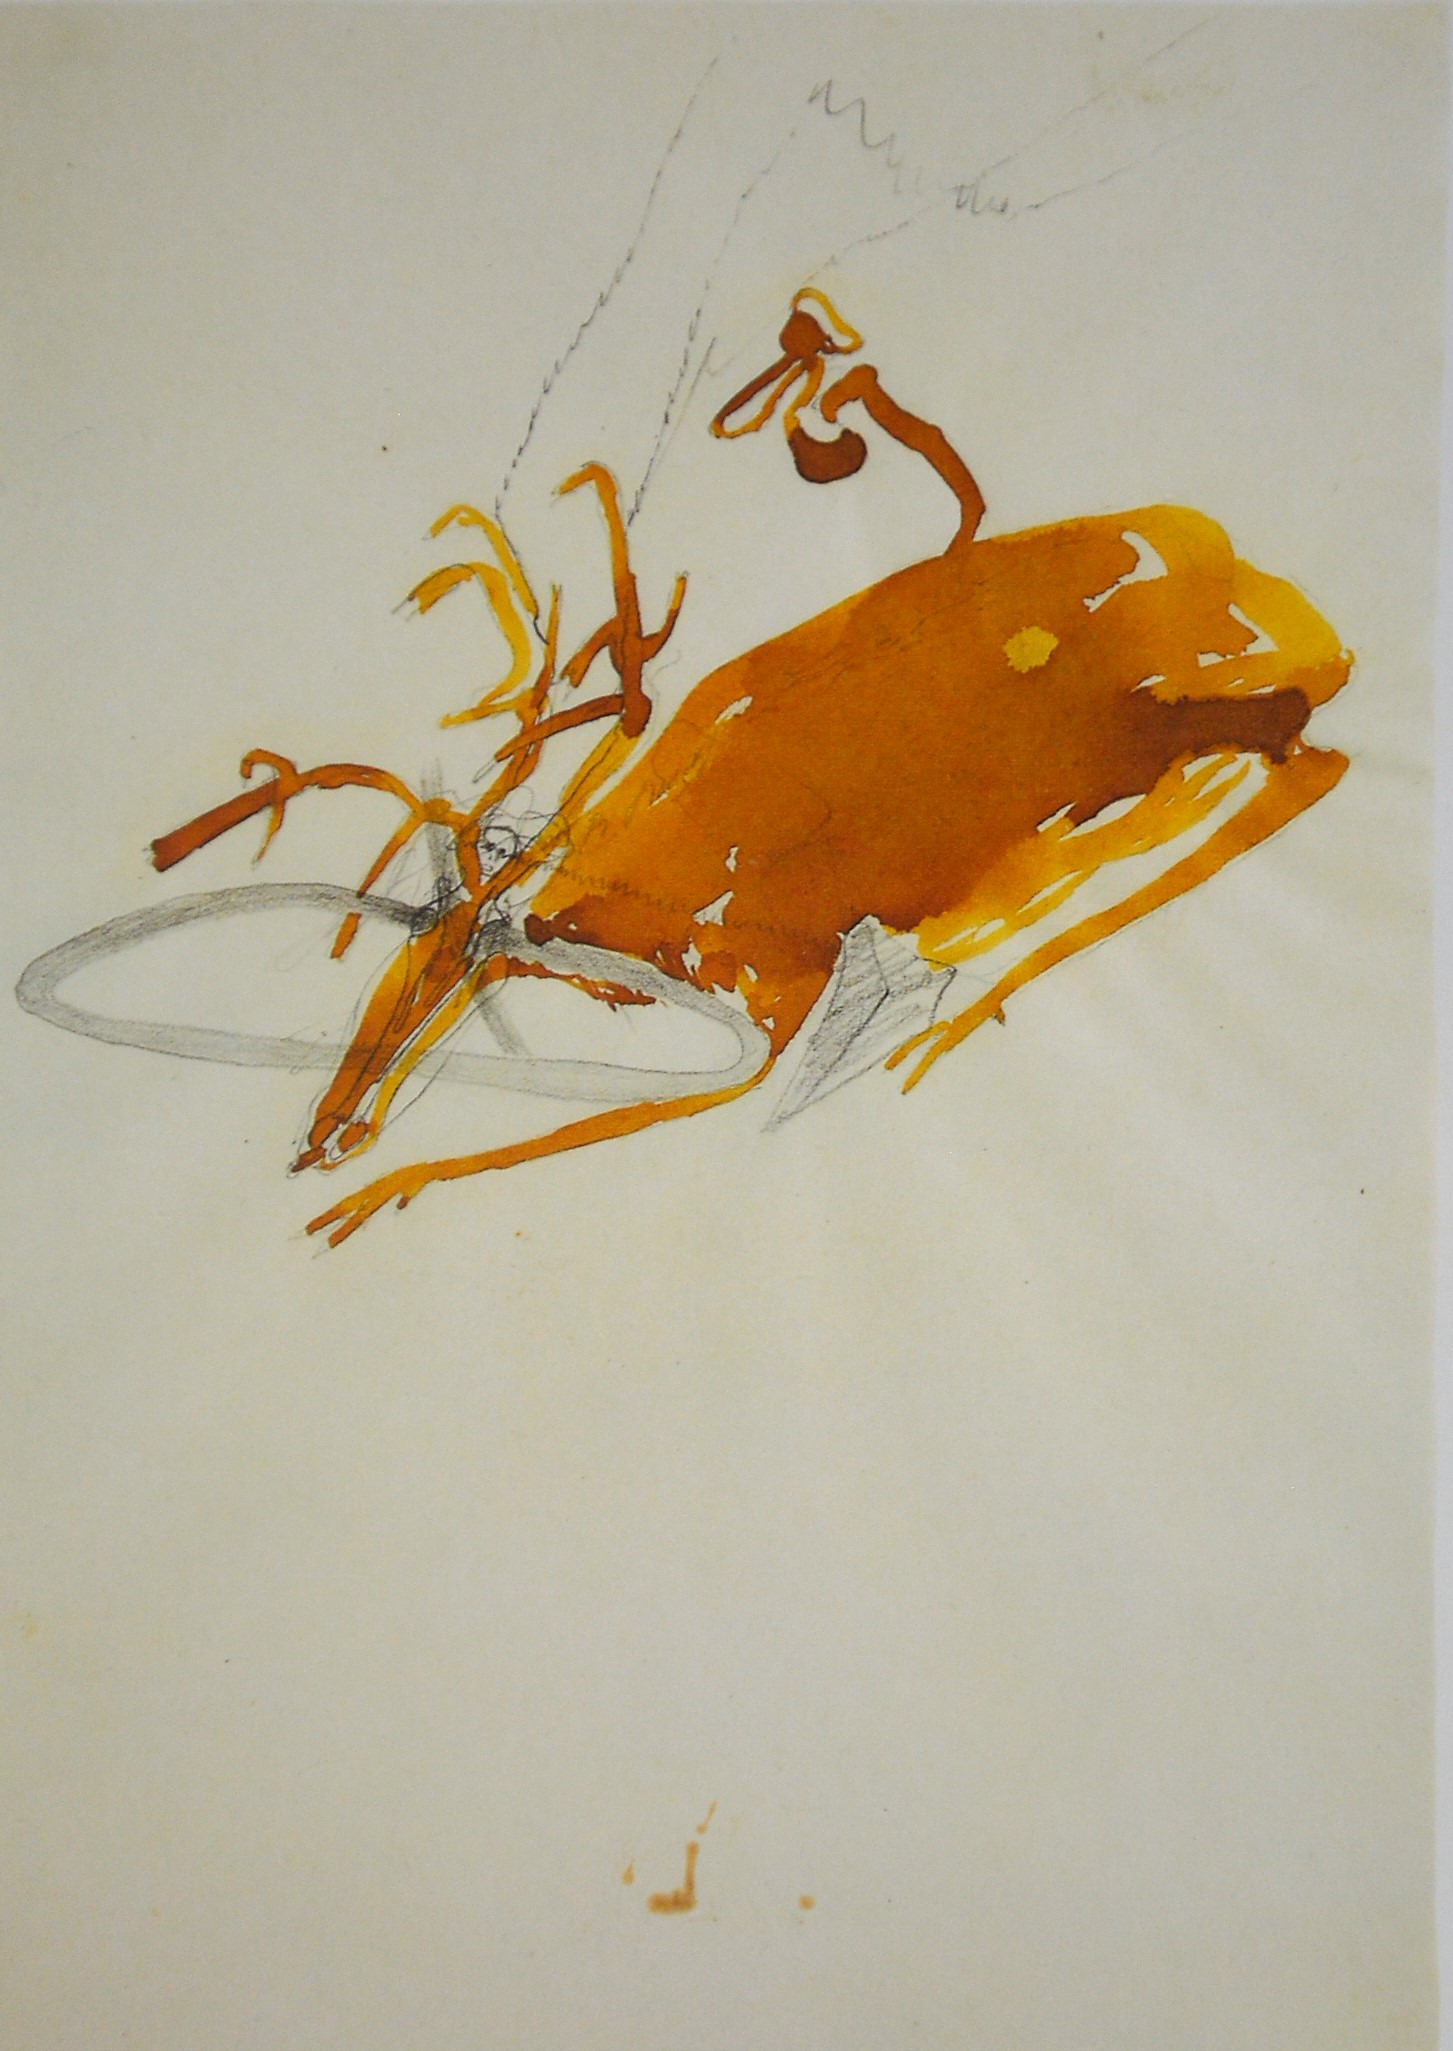 Joseph Beuys. Stag with Human Head, 1955